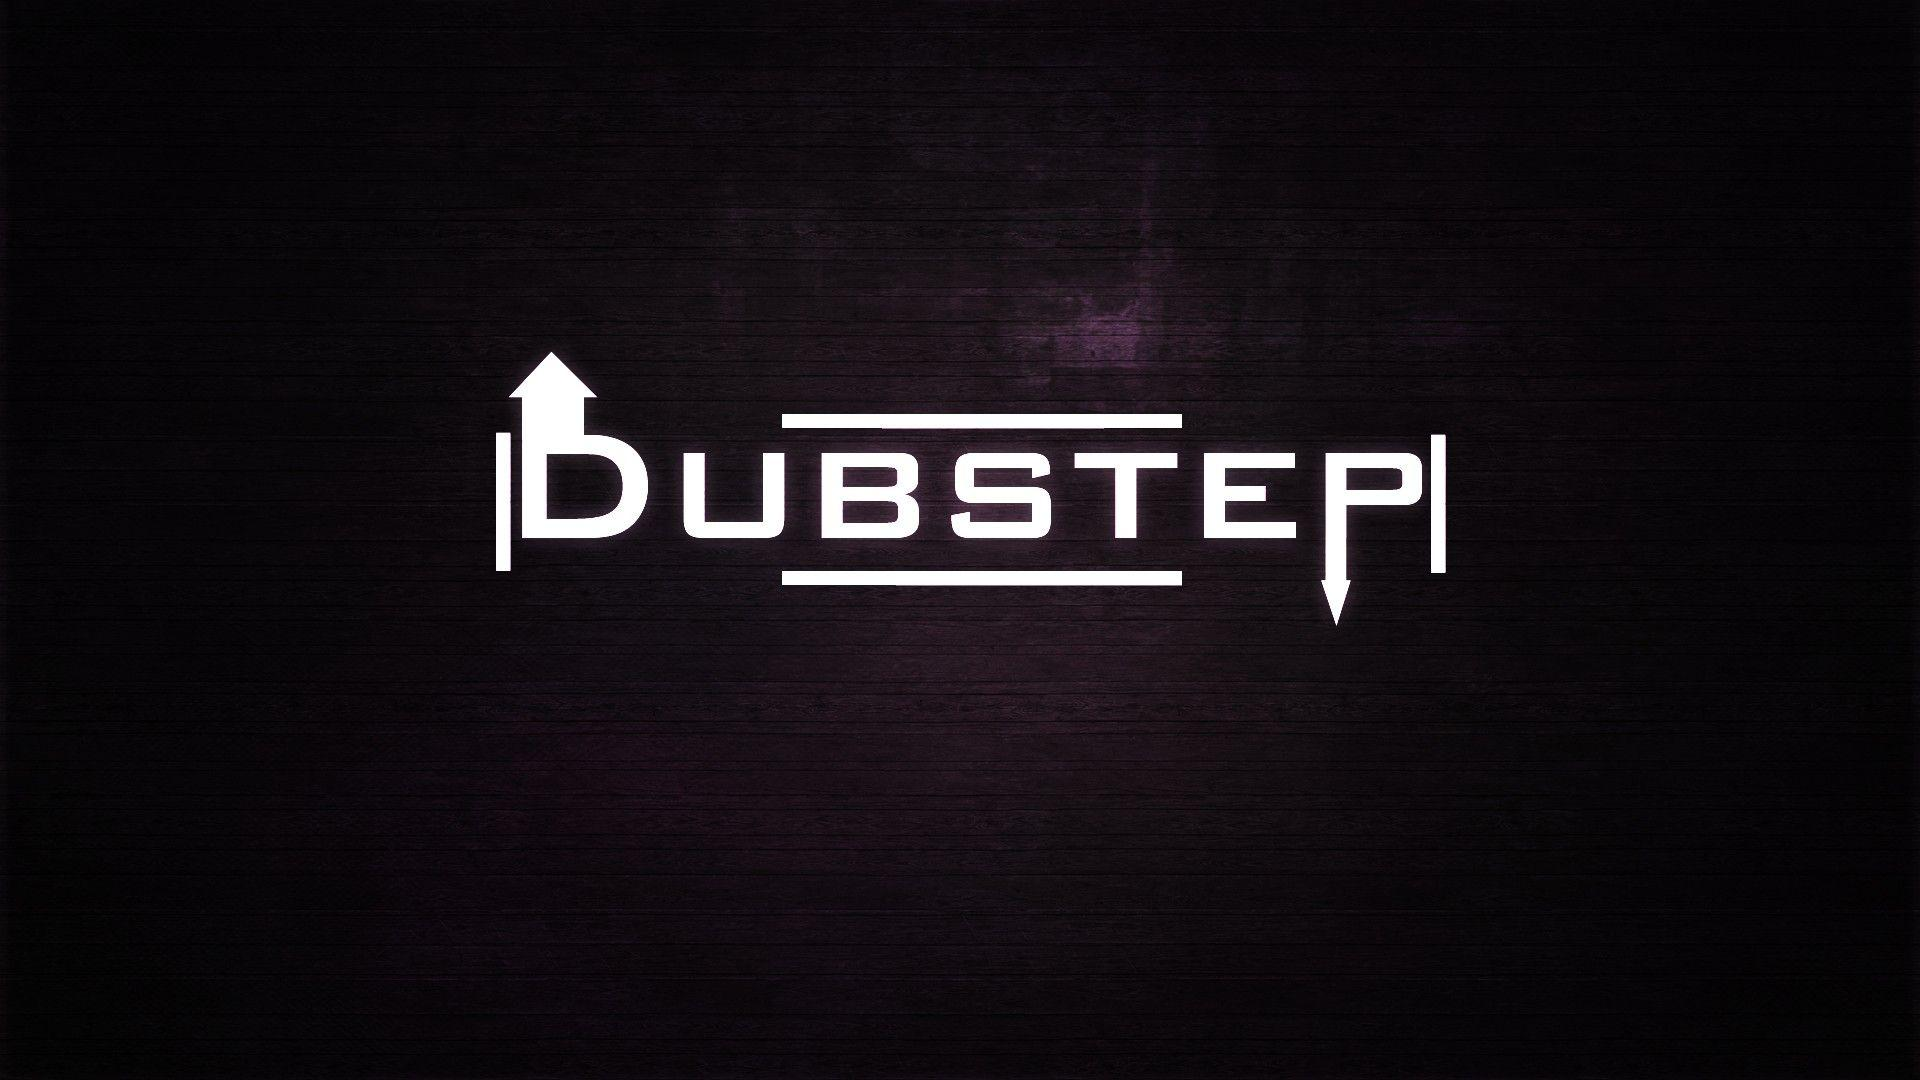 dubstep wallpapers wallpaper cave